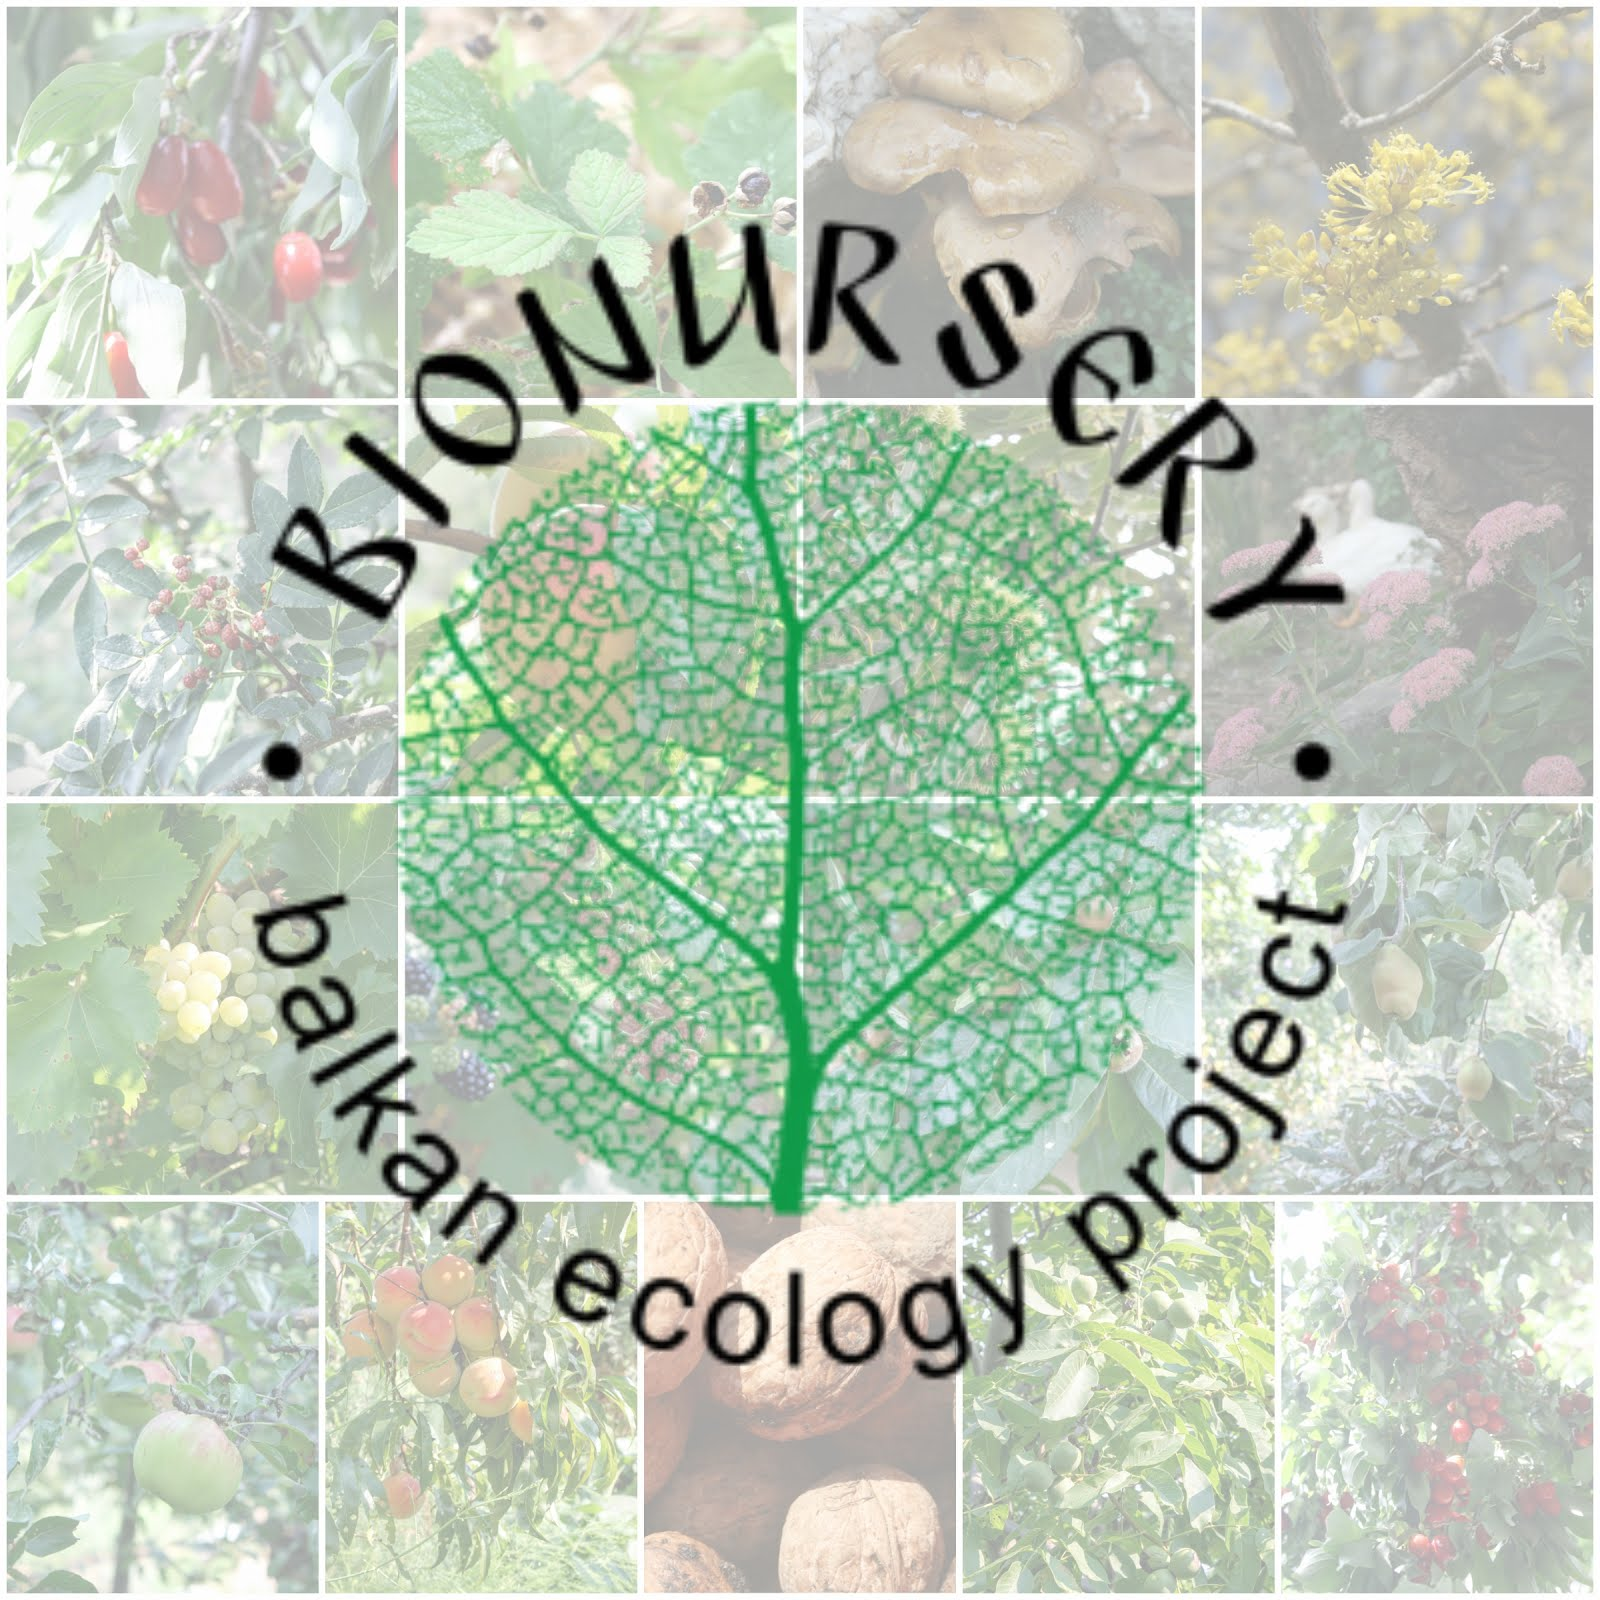 Balkan Ecology Project : Plants to Encourage Biodiversity in the ...